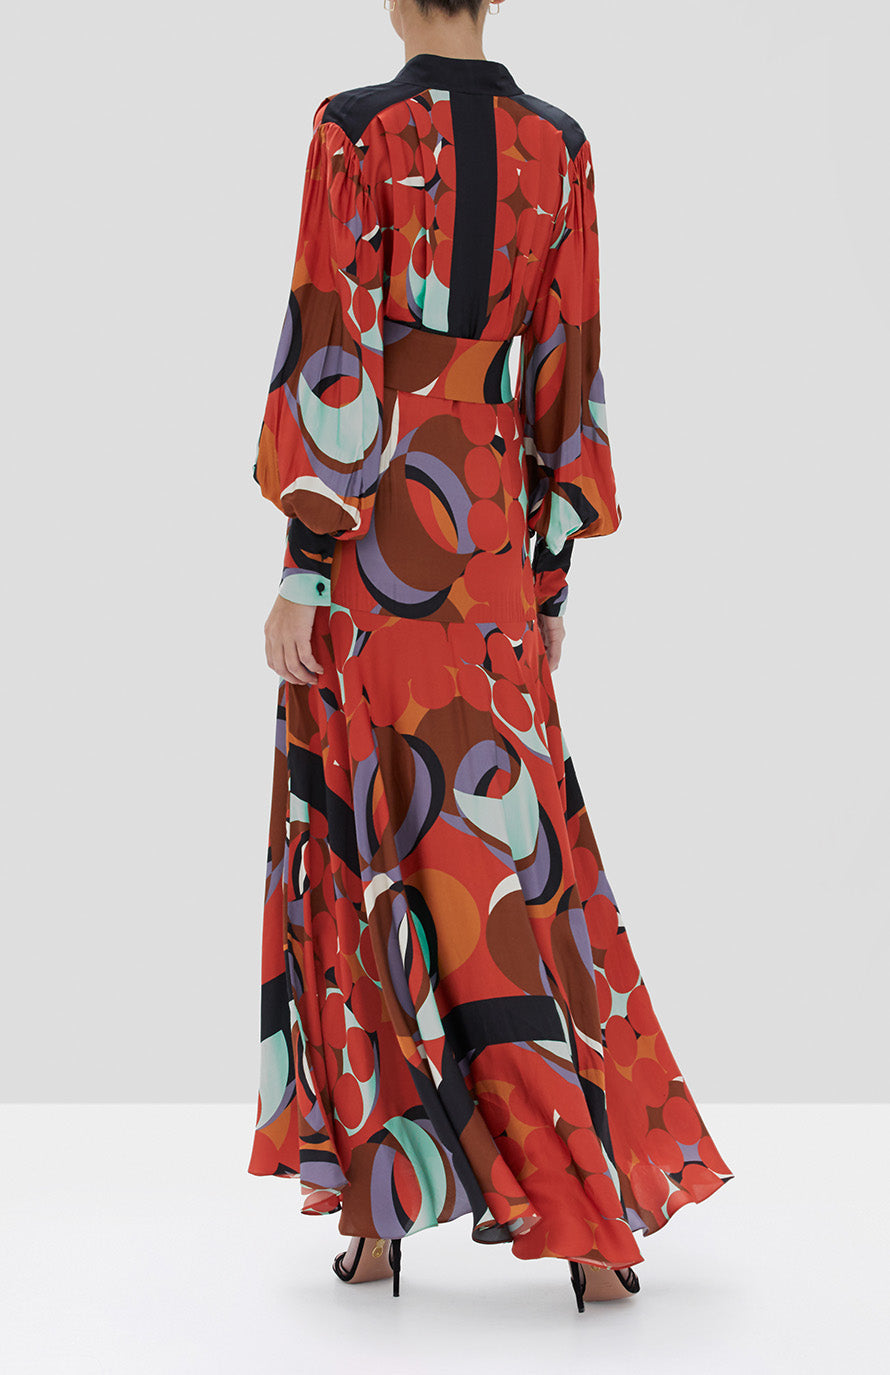 Alexis Pandora Dress in Red Eclipse from the Fall Winter 2019 Ready To Wear Collection - Rear View